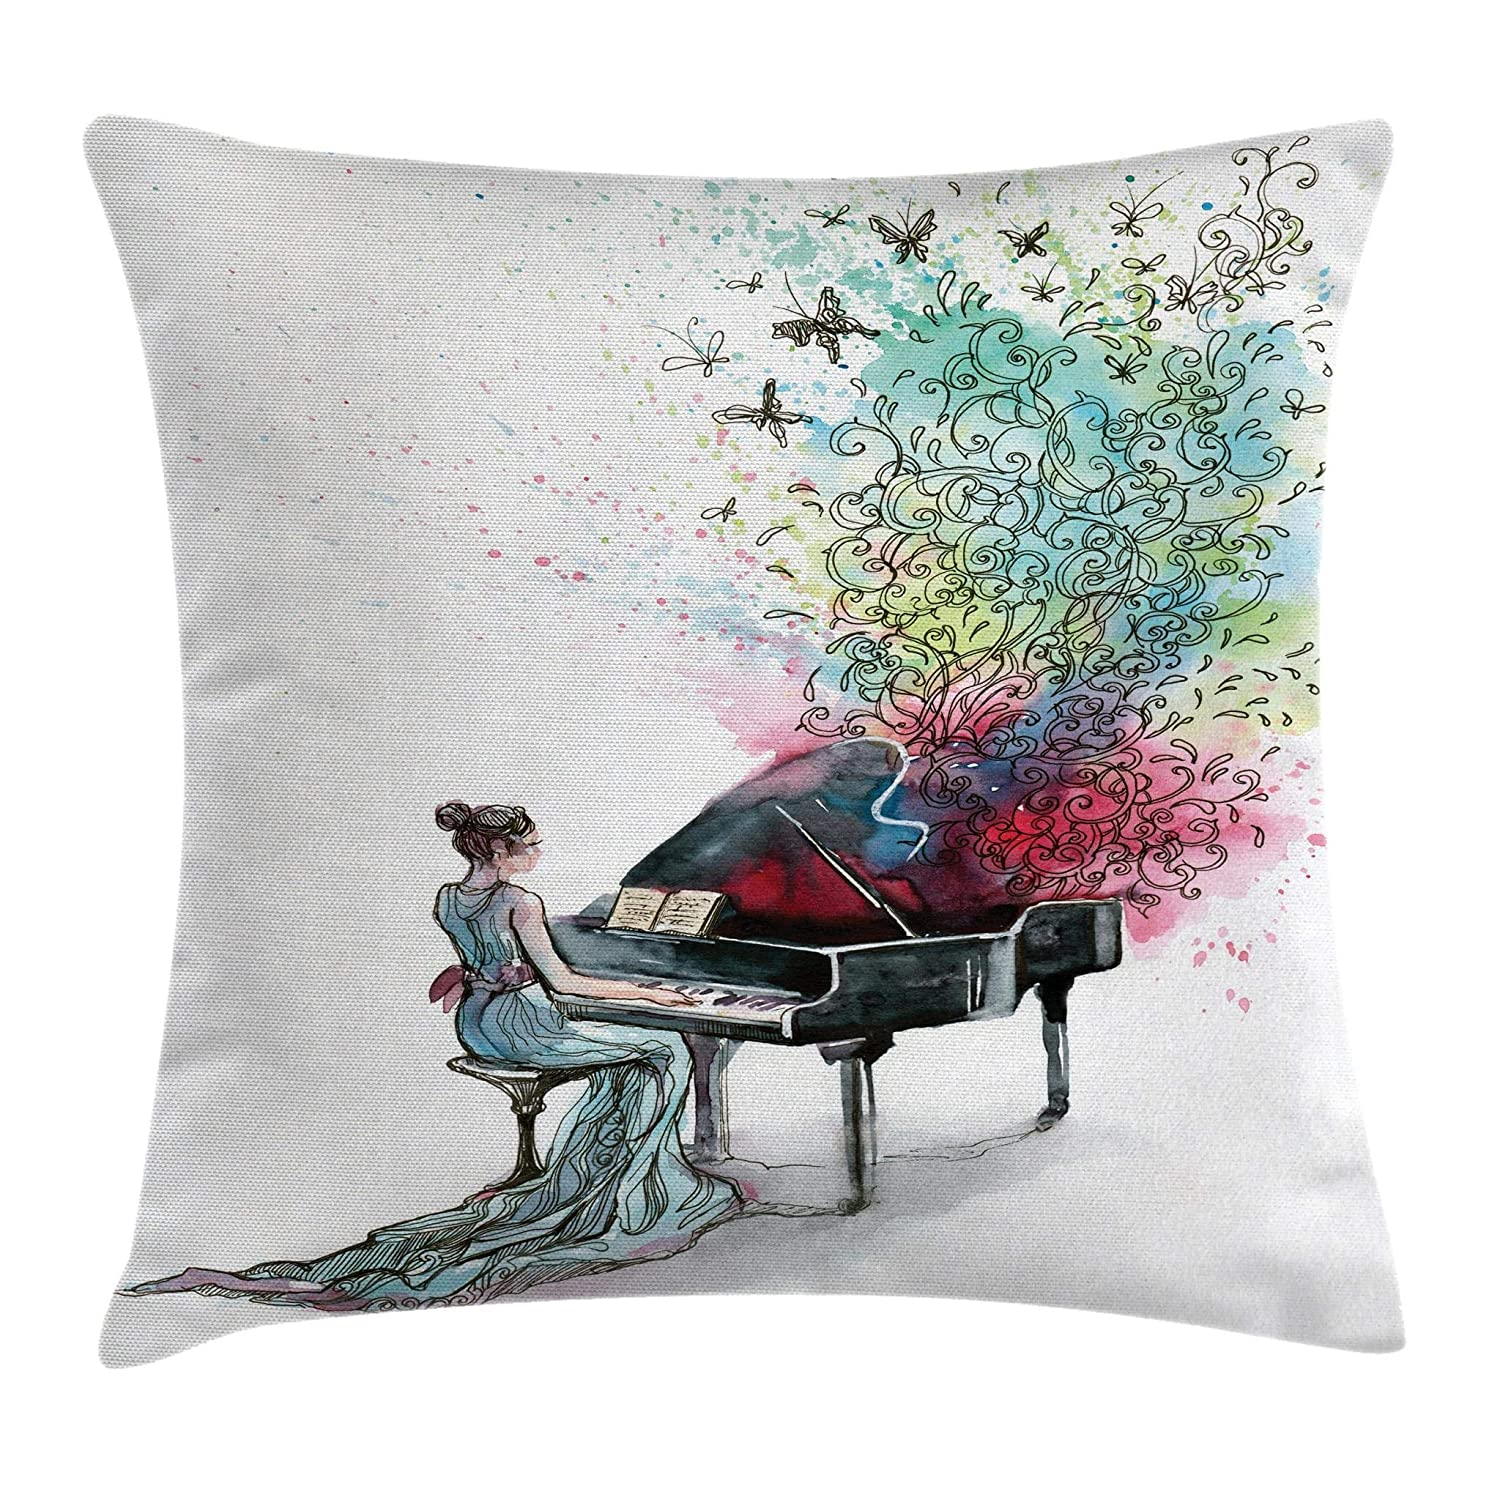 Grand Piano Music Musician Butterflies Ornamental Pianist Swirls Vintage 20 X 20 Inches Multi Ambesonne Music Decor Throw Pillow Cushion Cover by Decorative Square Accent Pillow Case